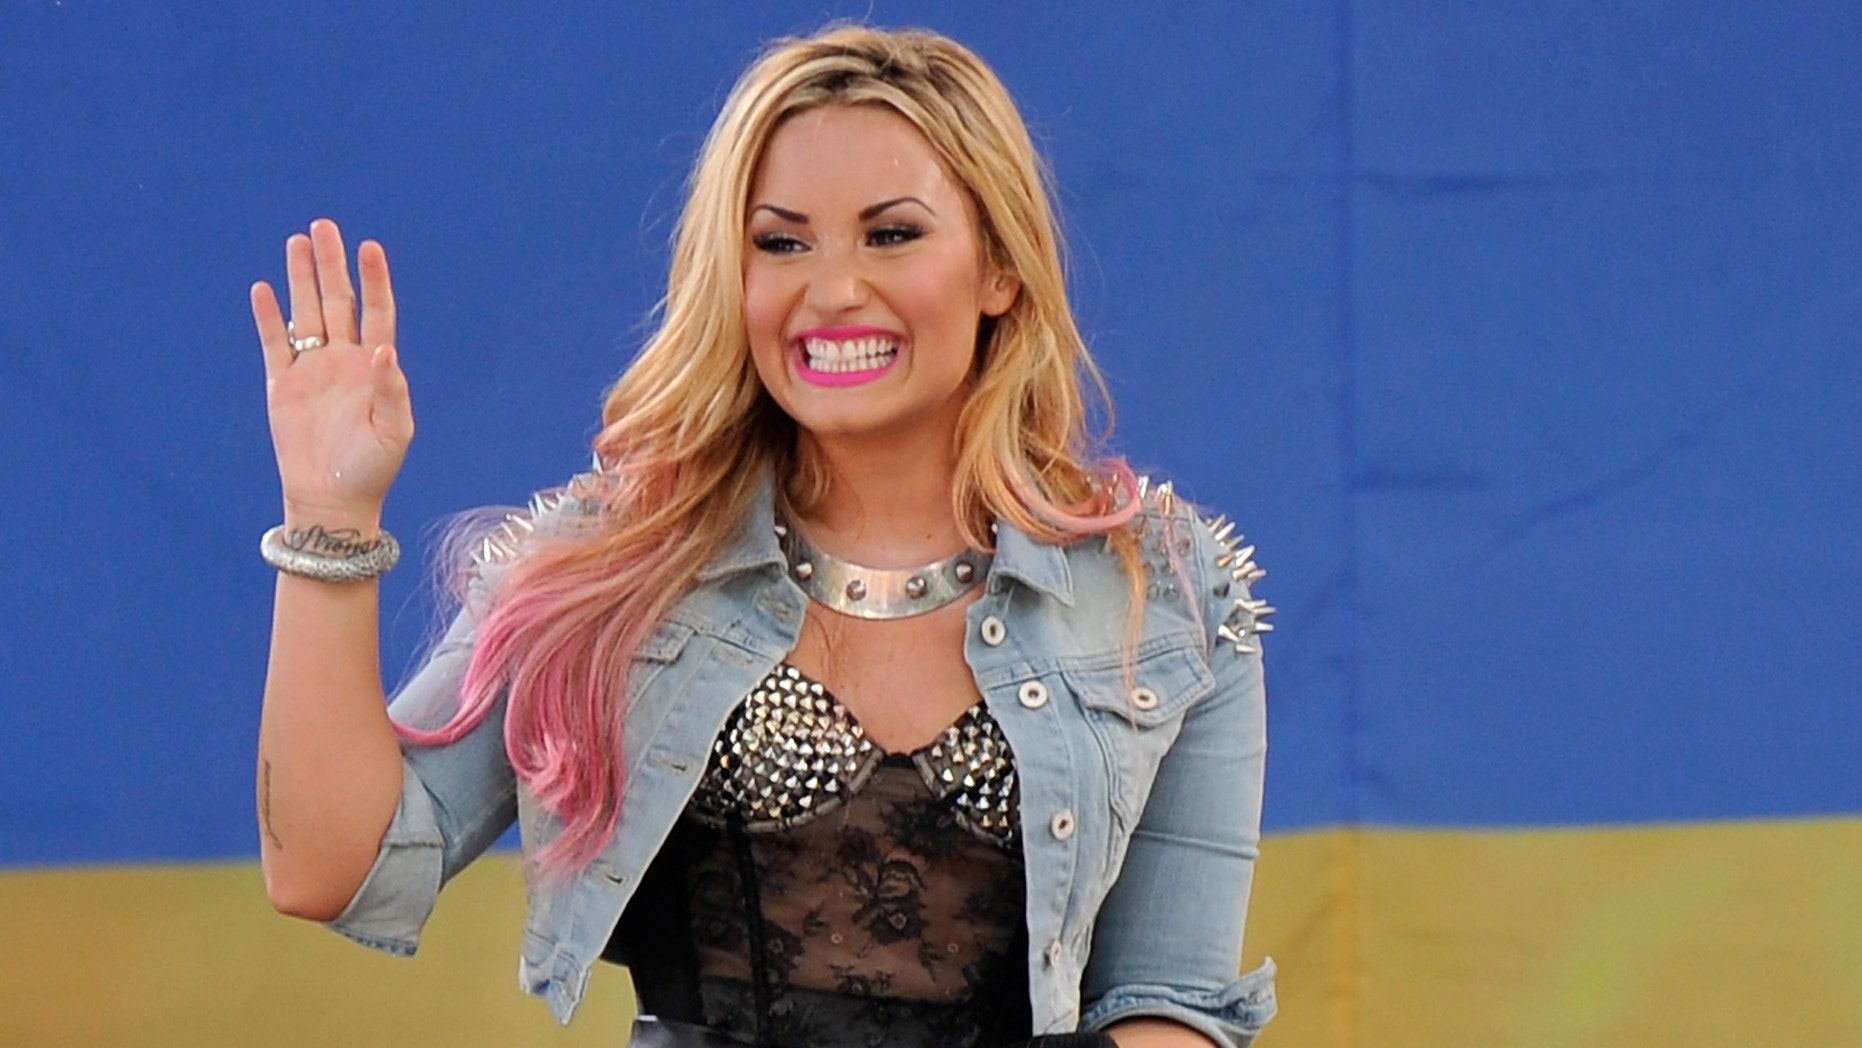 """NEW YORK, NY - JULY 06:  Singer Demi Lovato performs on ABC's """"Good Morning America"""" at Rumsey Playfield, Central Park on July 6, 2012 in New York City.  (Photo by Stephen Lovekin/Getty Images)"""